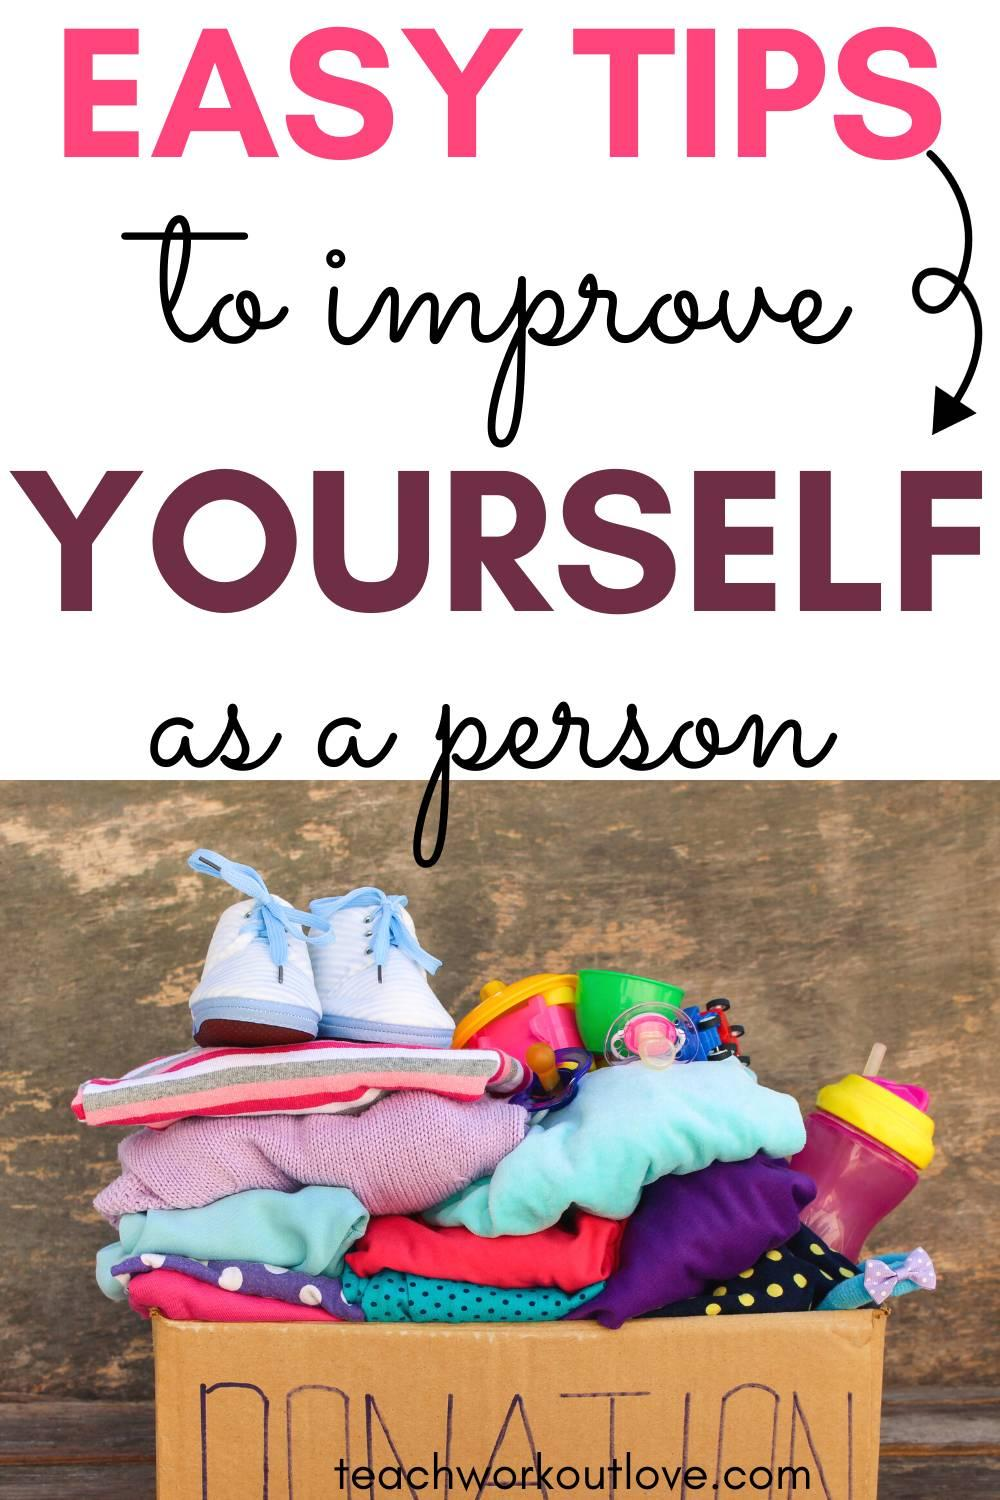 we have put together some top tips to help improve yourself as a person that you can easily implement into your day to day life.